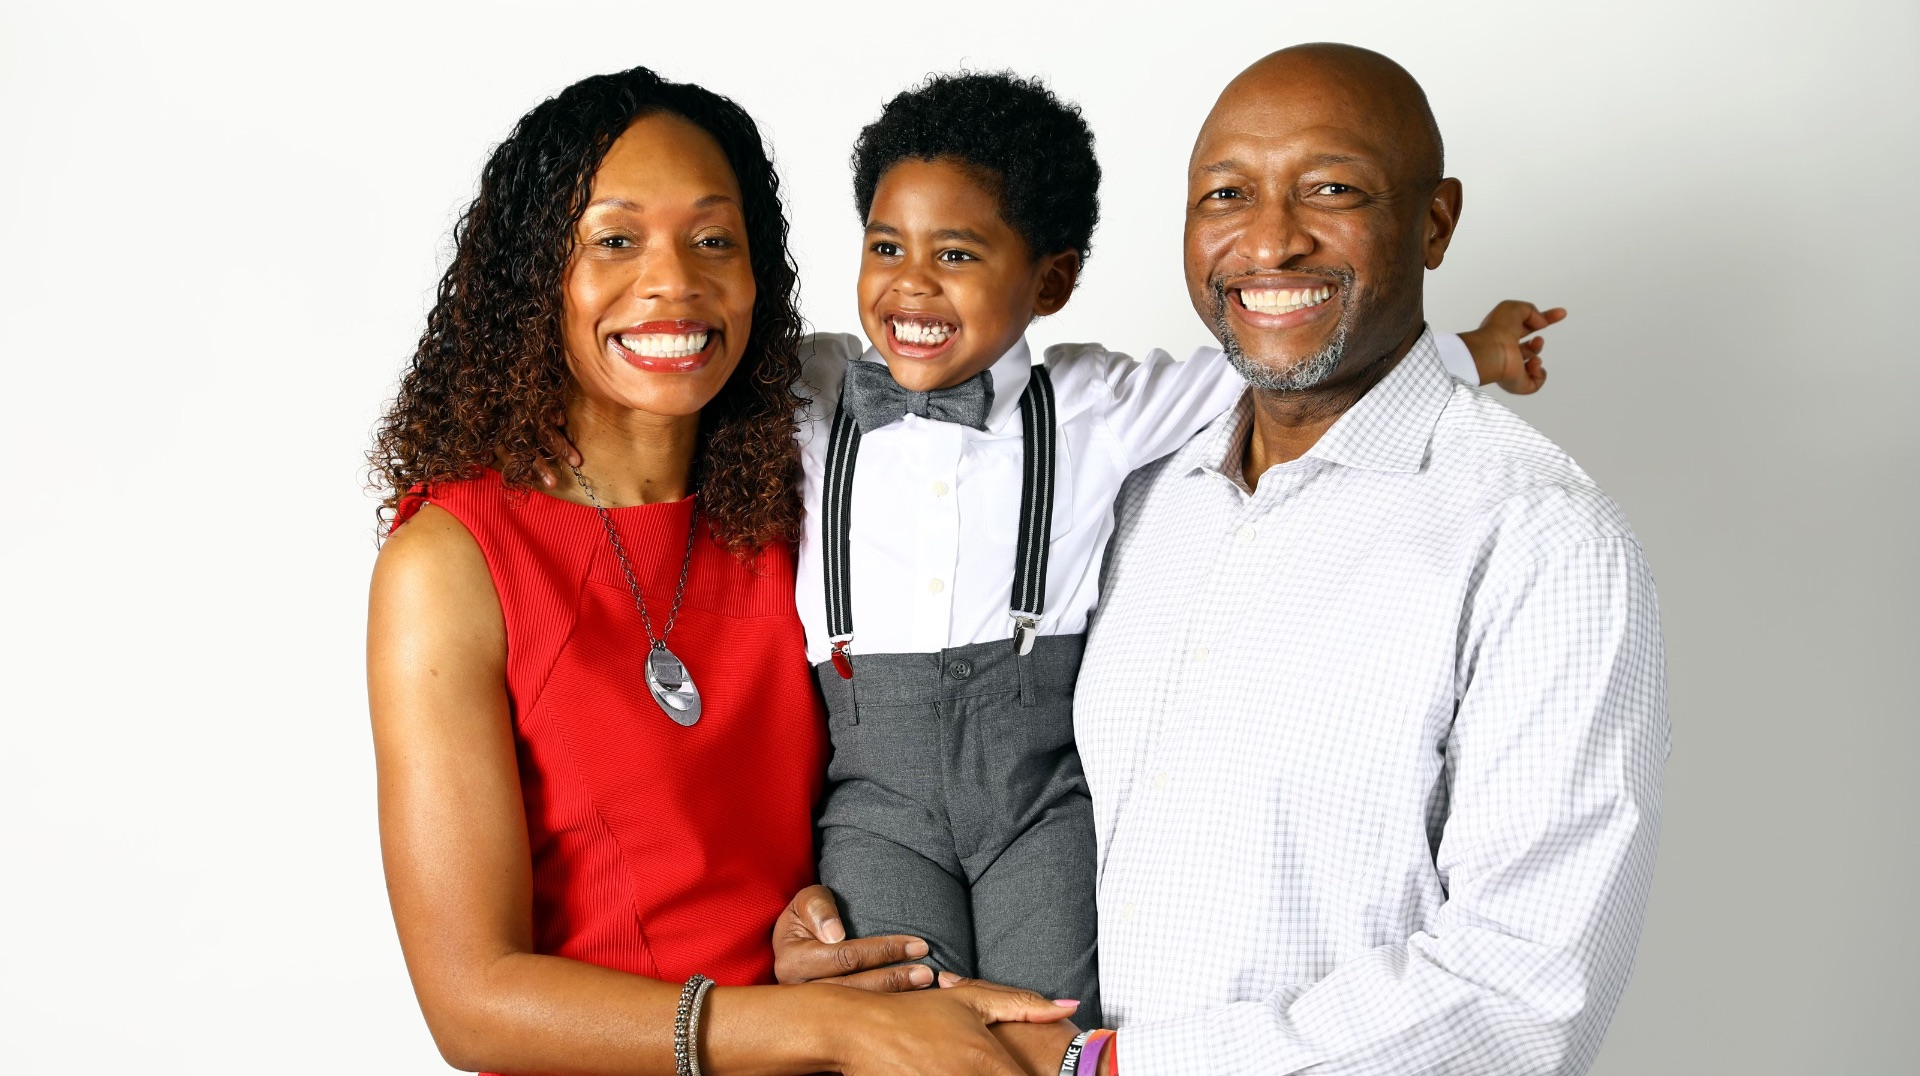 Jackson smiles widely as he is carried in between his mother, Coach Kyra Elzy—an African American woman with brown hair in a red dress—and his father, Dexter Lander, an African American man in a white button-down shirt